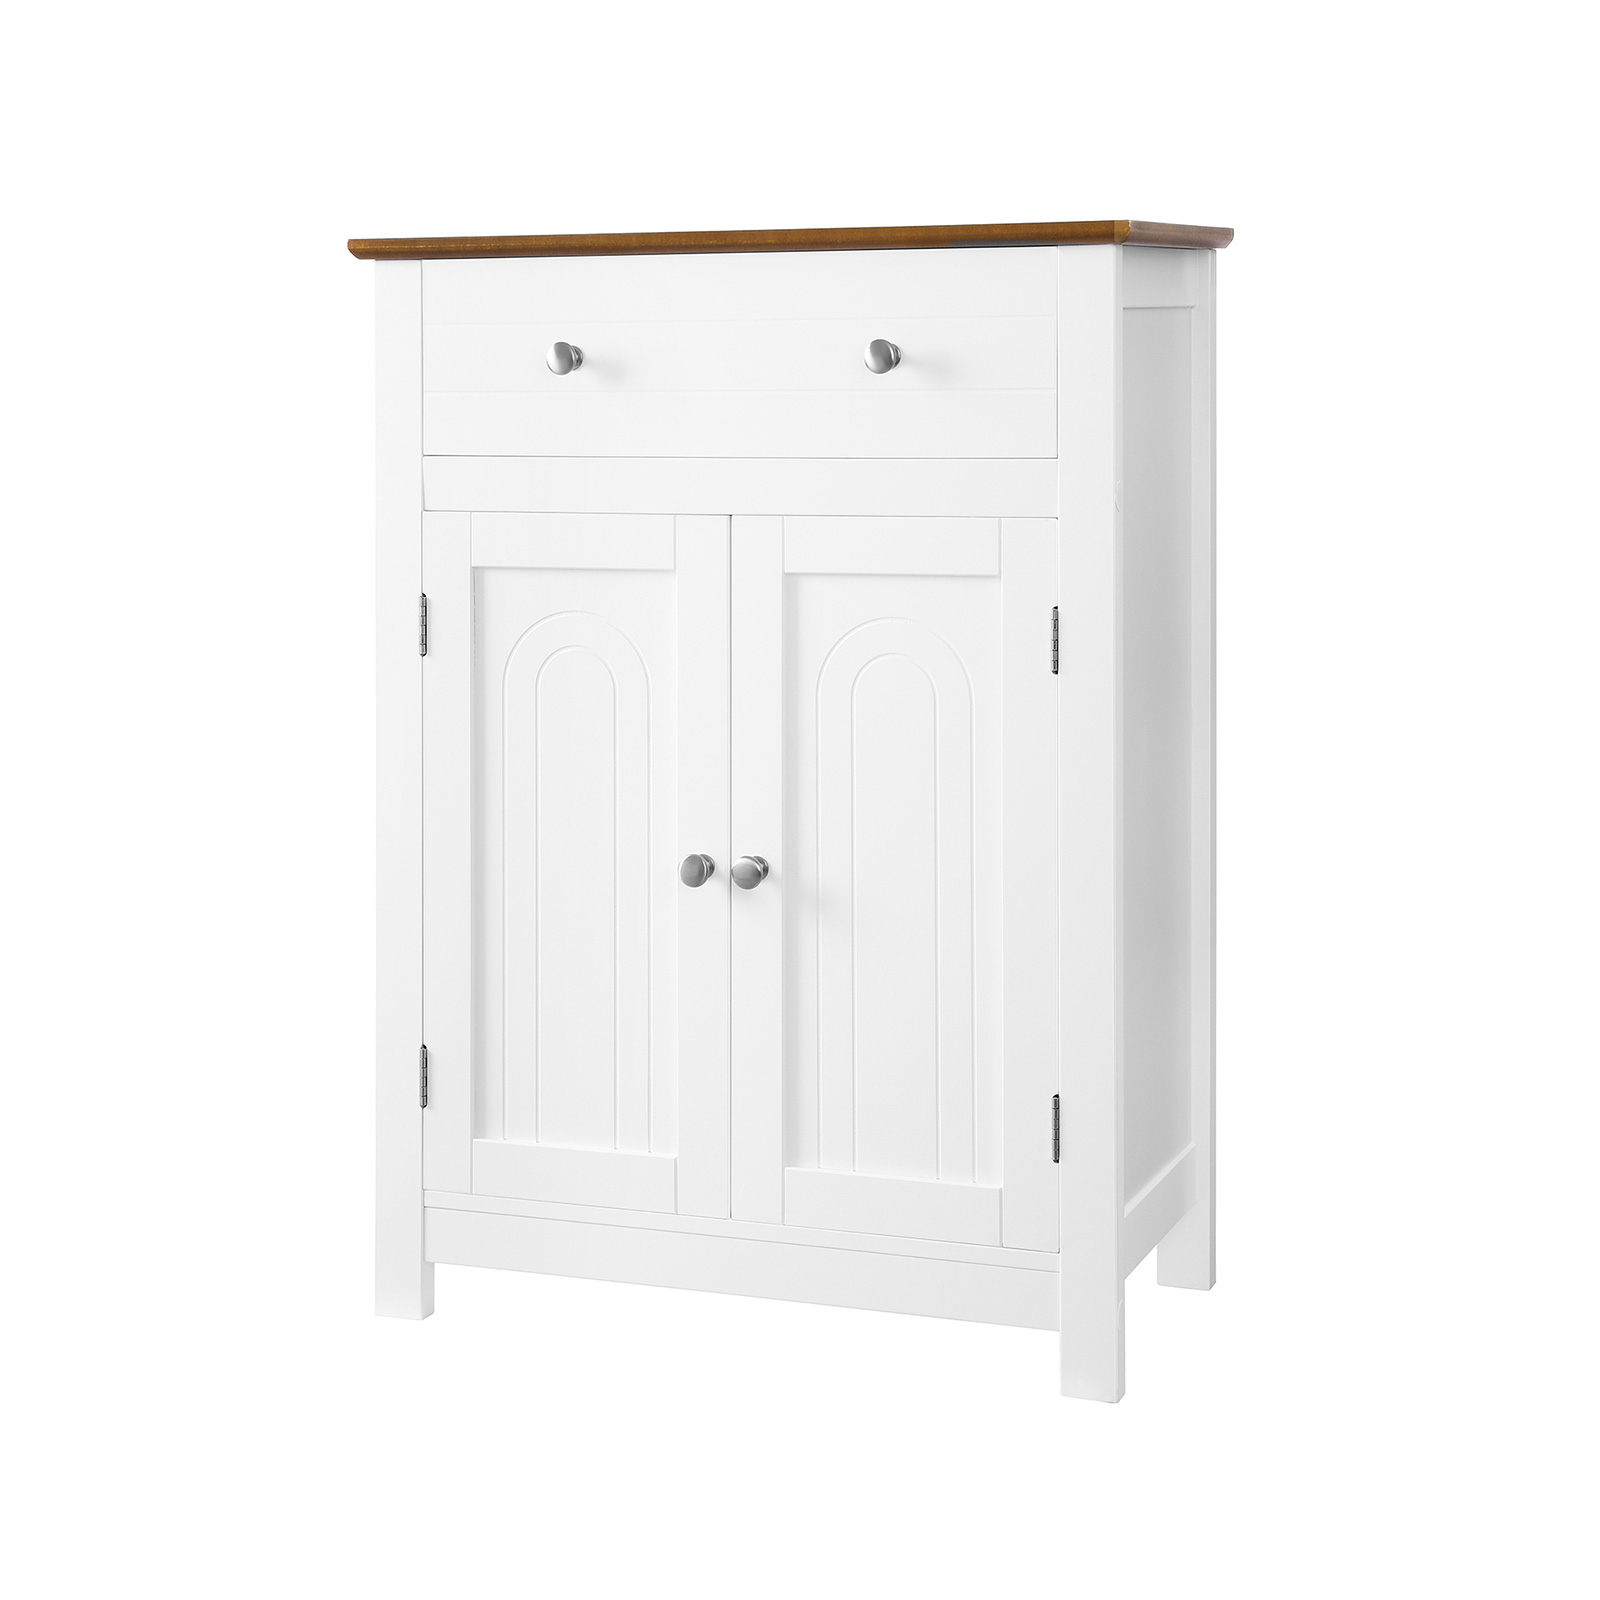 Picture of: Free Standing Bathroom Cabinet Storage Cabinet Vasagle By Songmics